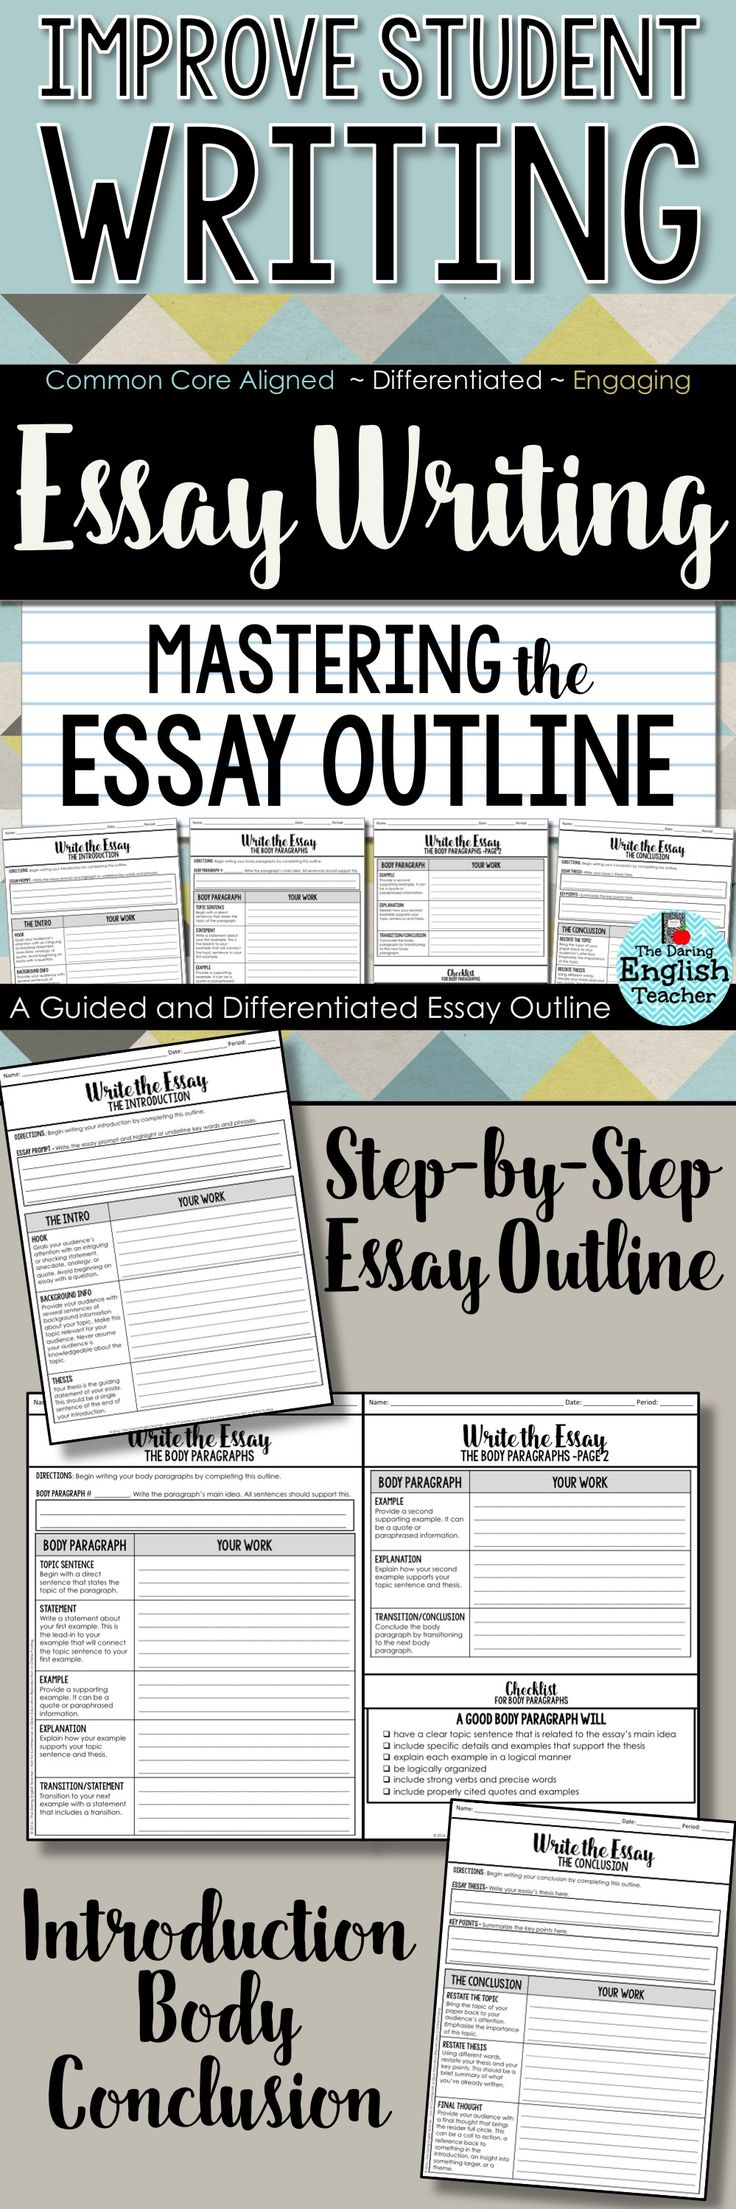 Example Of Exposition Essay  Best Ideas About Essay Writing Essay Writing Essay Writing Mastering The  Essay Outline Guided Instructions Fountainhead Essay also Academic Essay Sample Teaching Essay Writing To High School Students How To Write A Good  Research Essay Questions